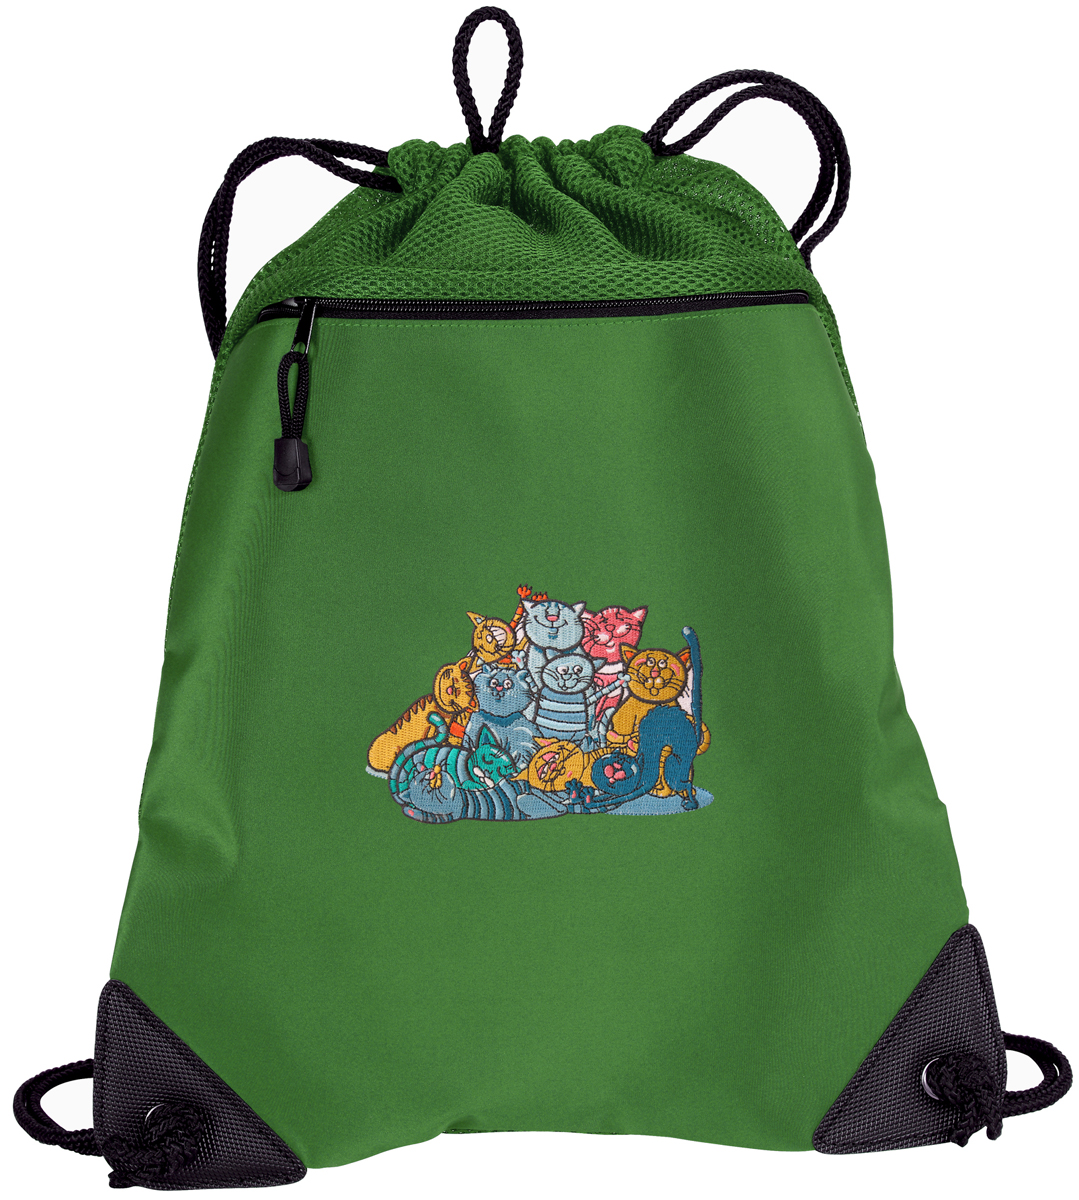 Cat Drawstring Bags Crazy Cat Cinch Backpacks - Unique Mesh & Microfiber